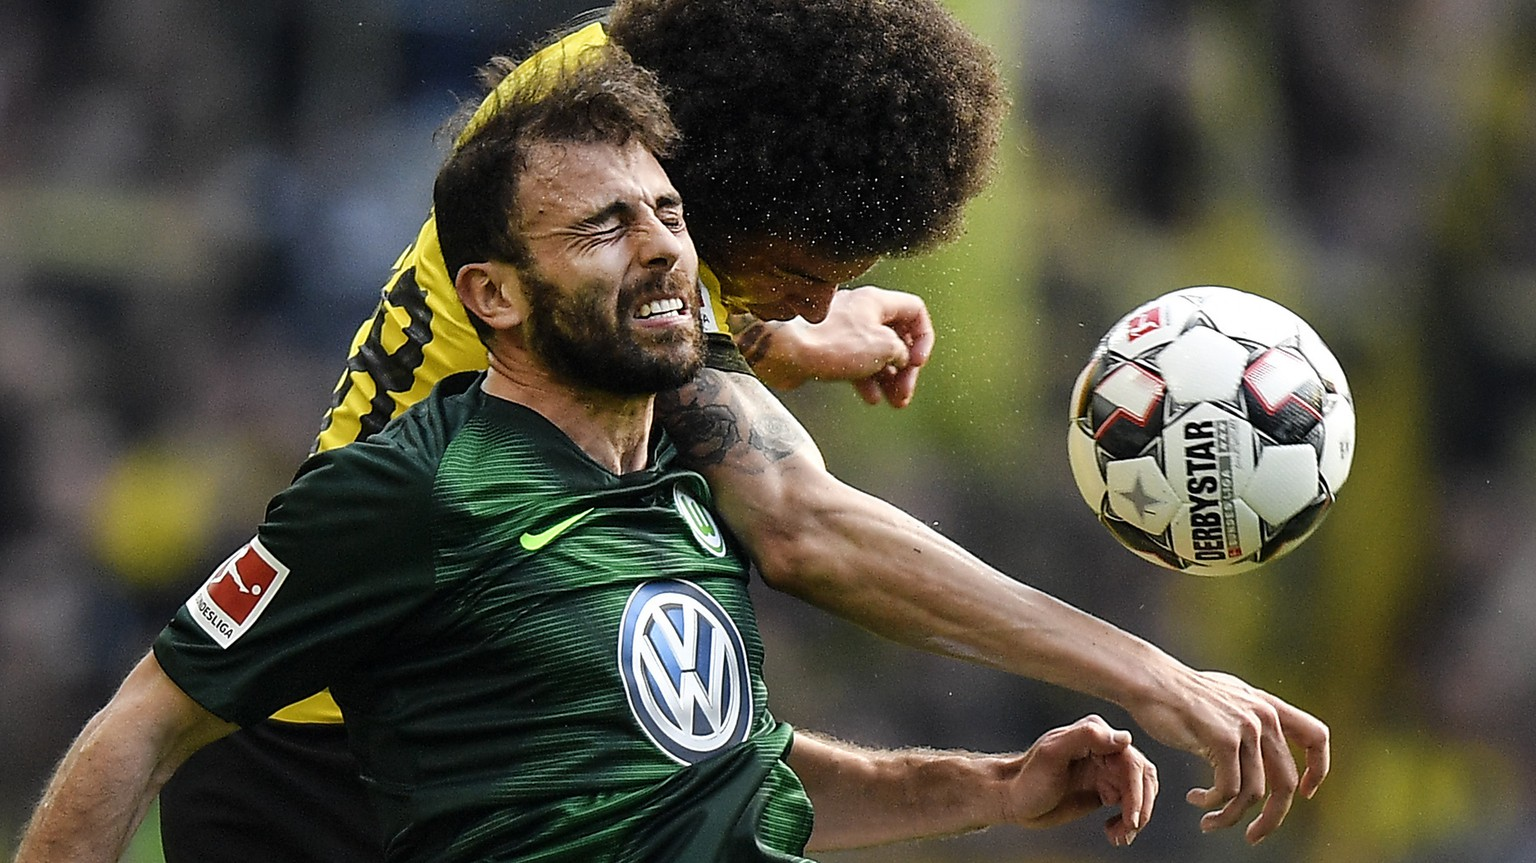 Wolfsburg's Admir Mehmedi, left, and Dortmund's Axel Witsel, right, challenge for the ball during the German Bundesliga soccer match between Borussia Dortmund and VfL Wolfsburg in Dortmund, Germany, Saturday, March 30, 2019. (AP Photo/Martin Meissner)